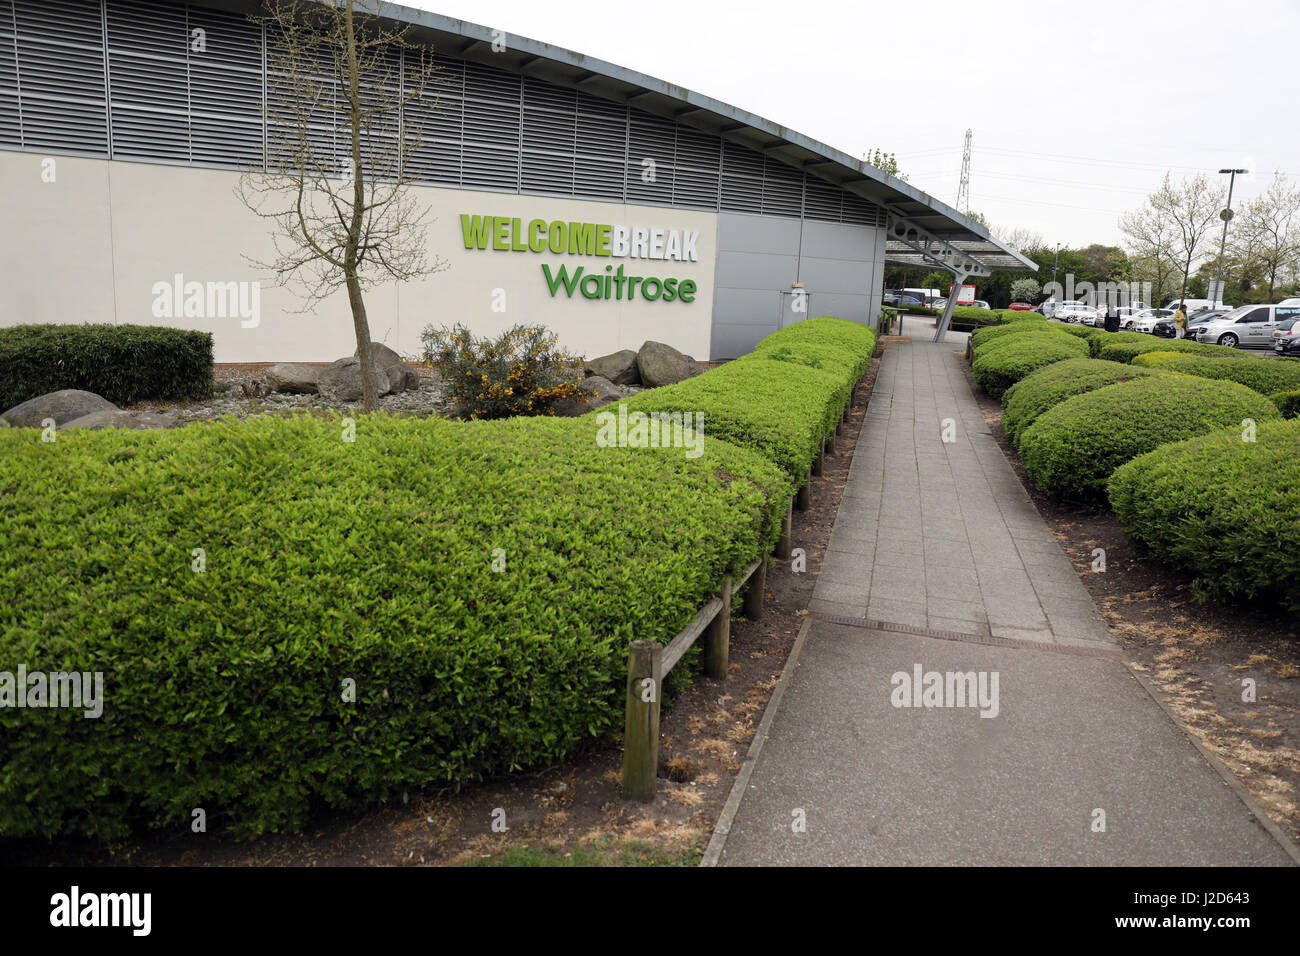 Scenes from South Mimms Services motorway service station Stock Photo